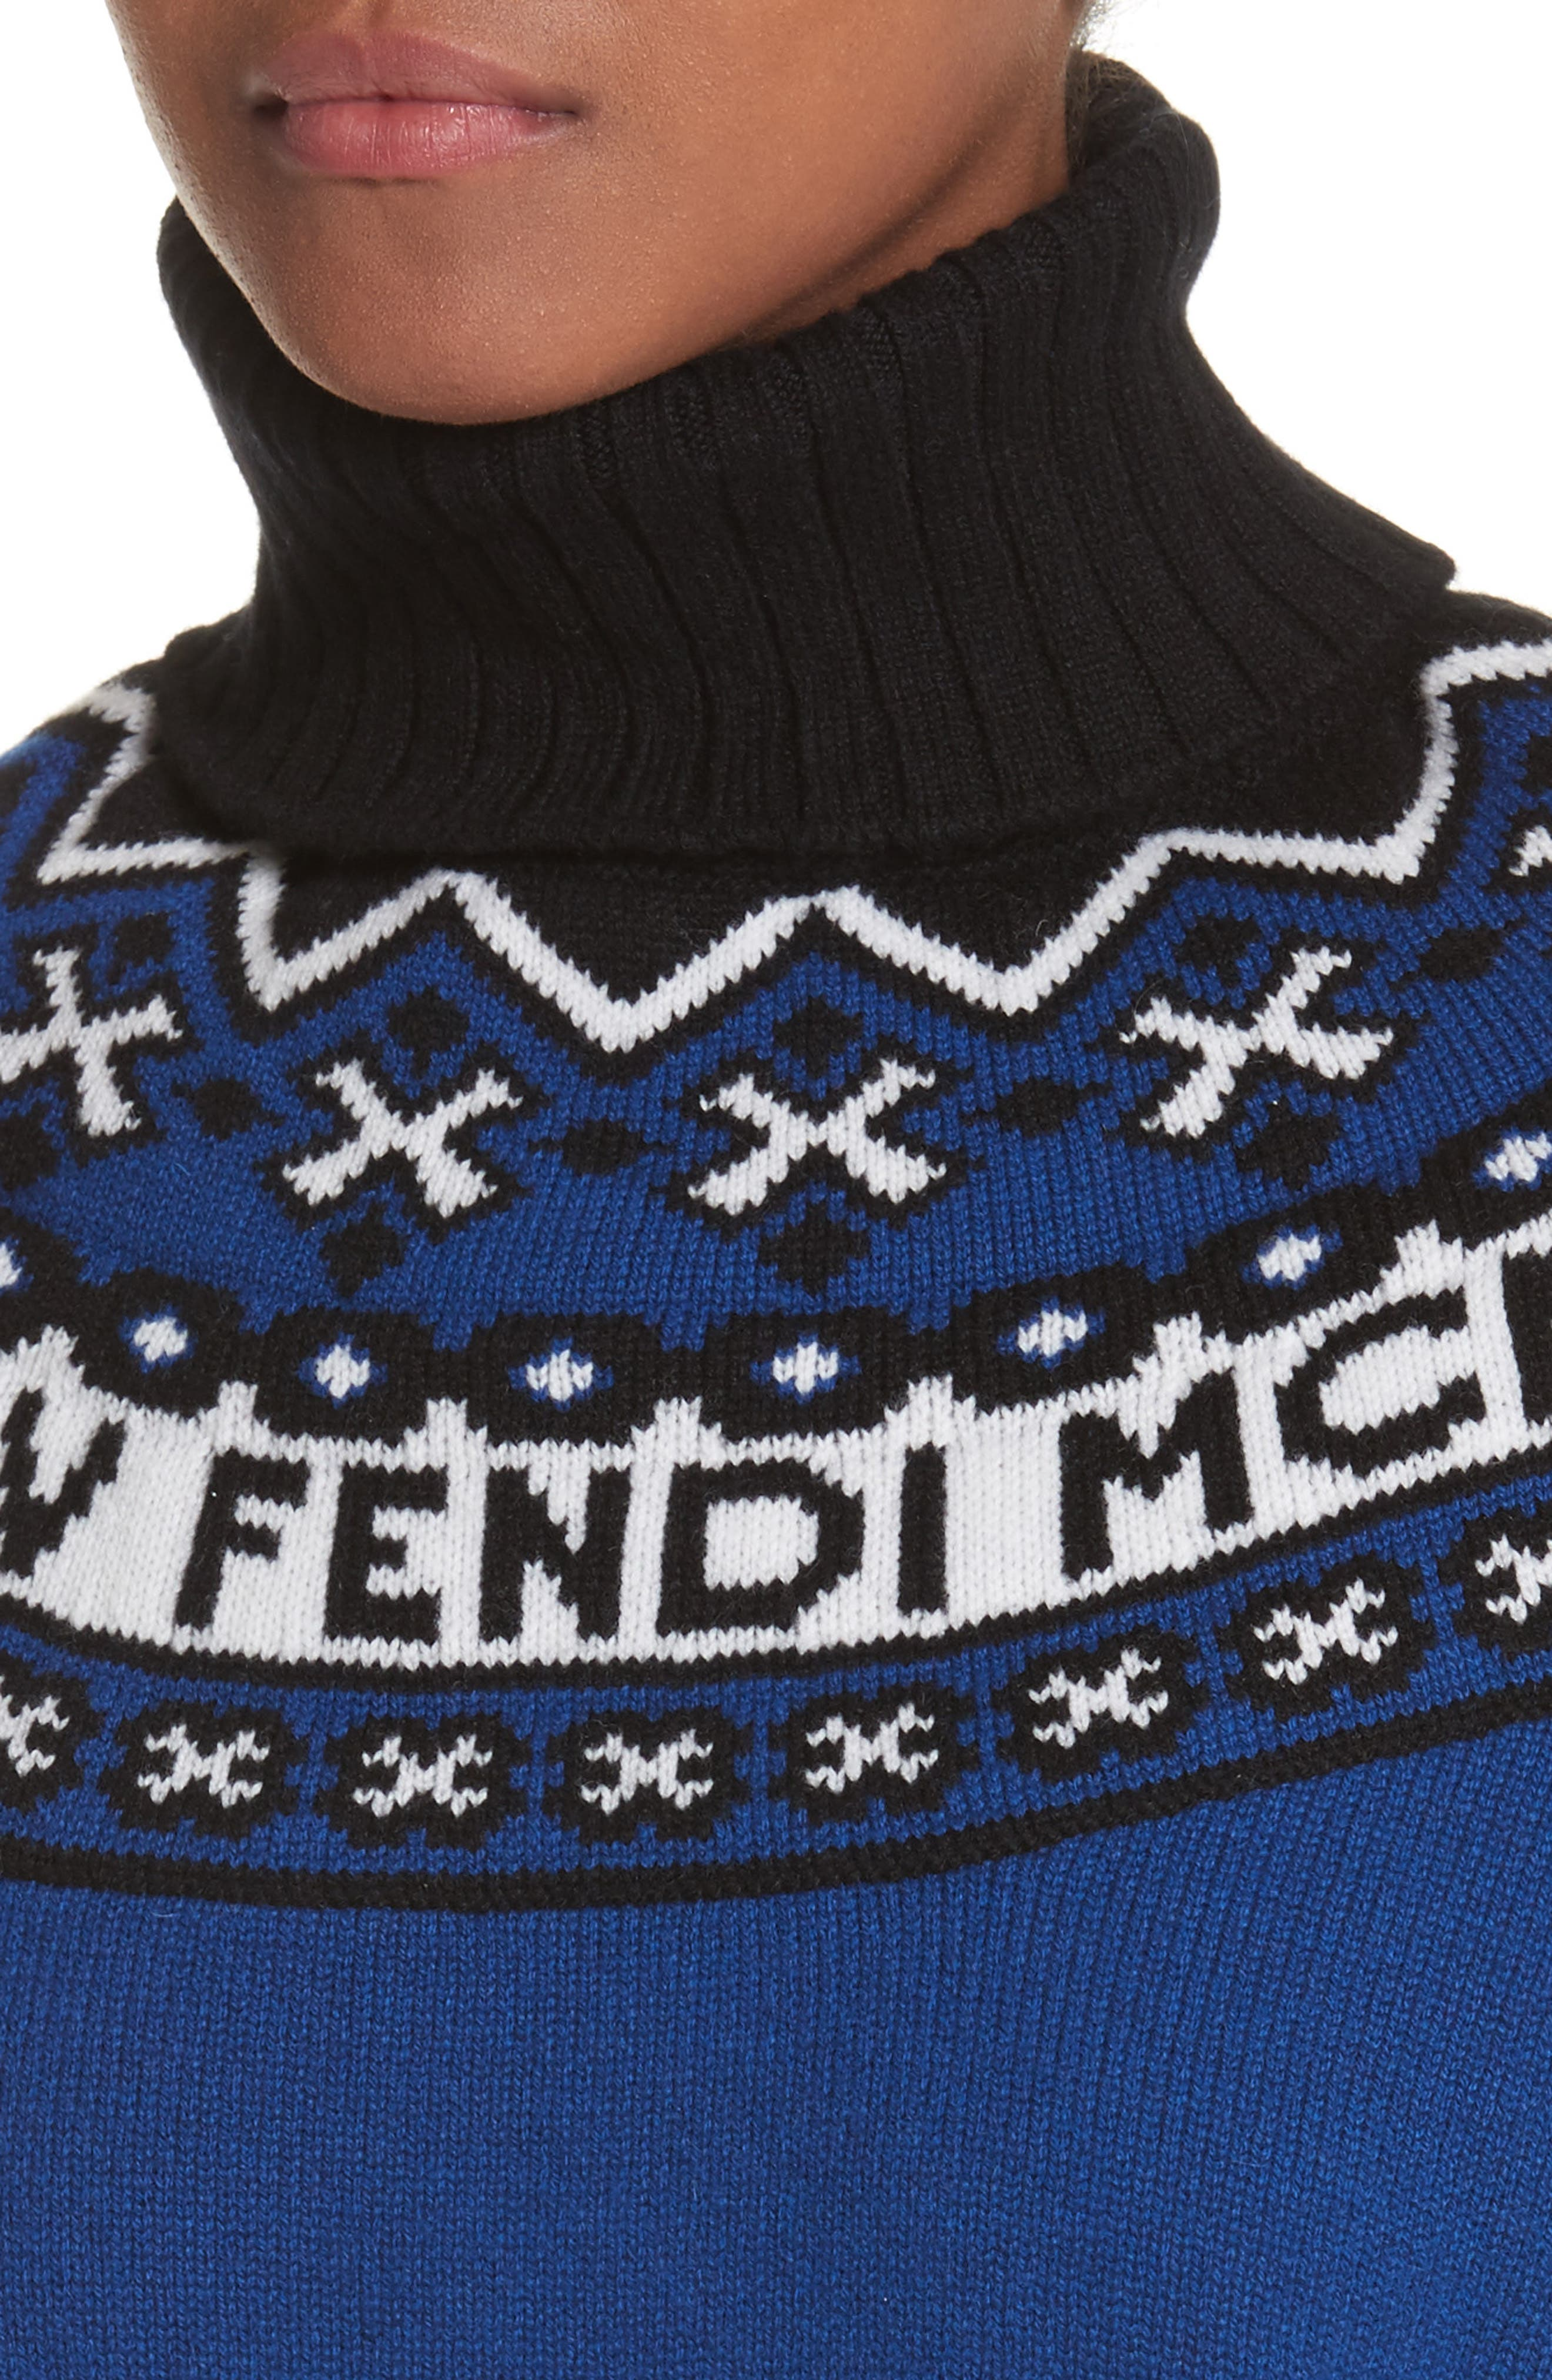 Heritage Wool & Cashmere Sweater,                             Alternate thumbnail 4, color,